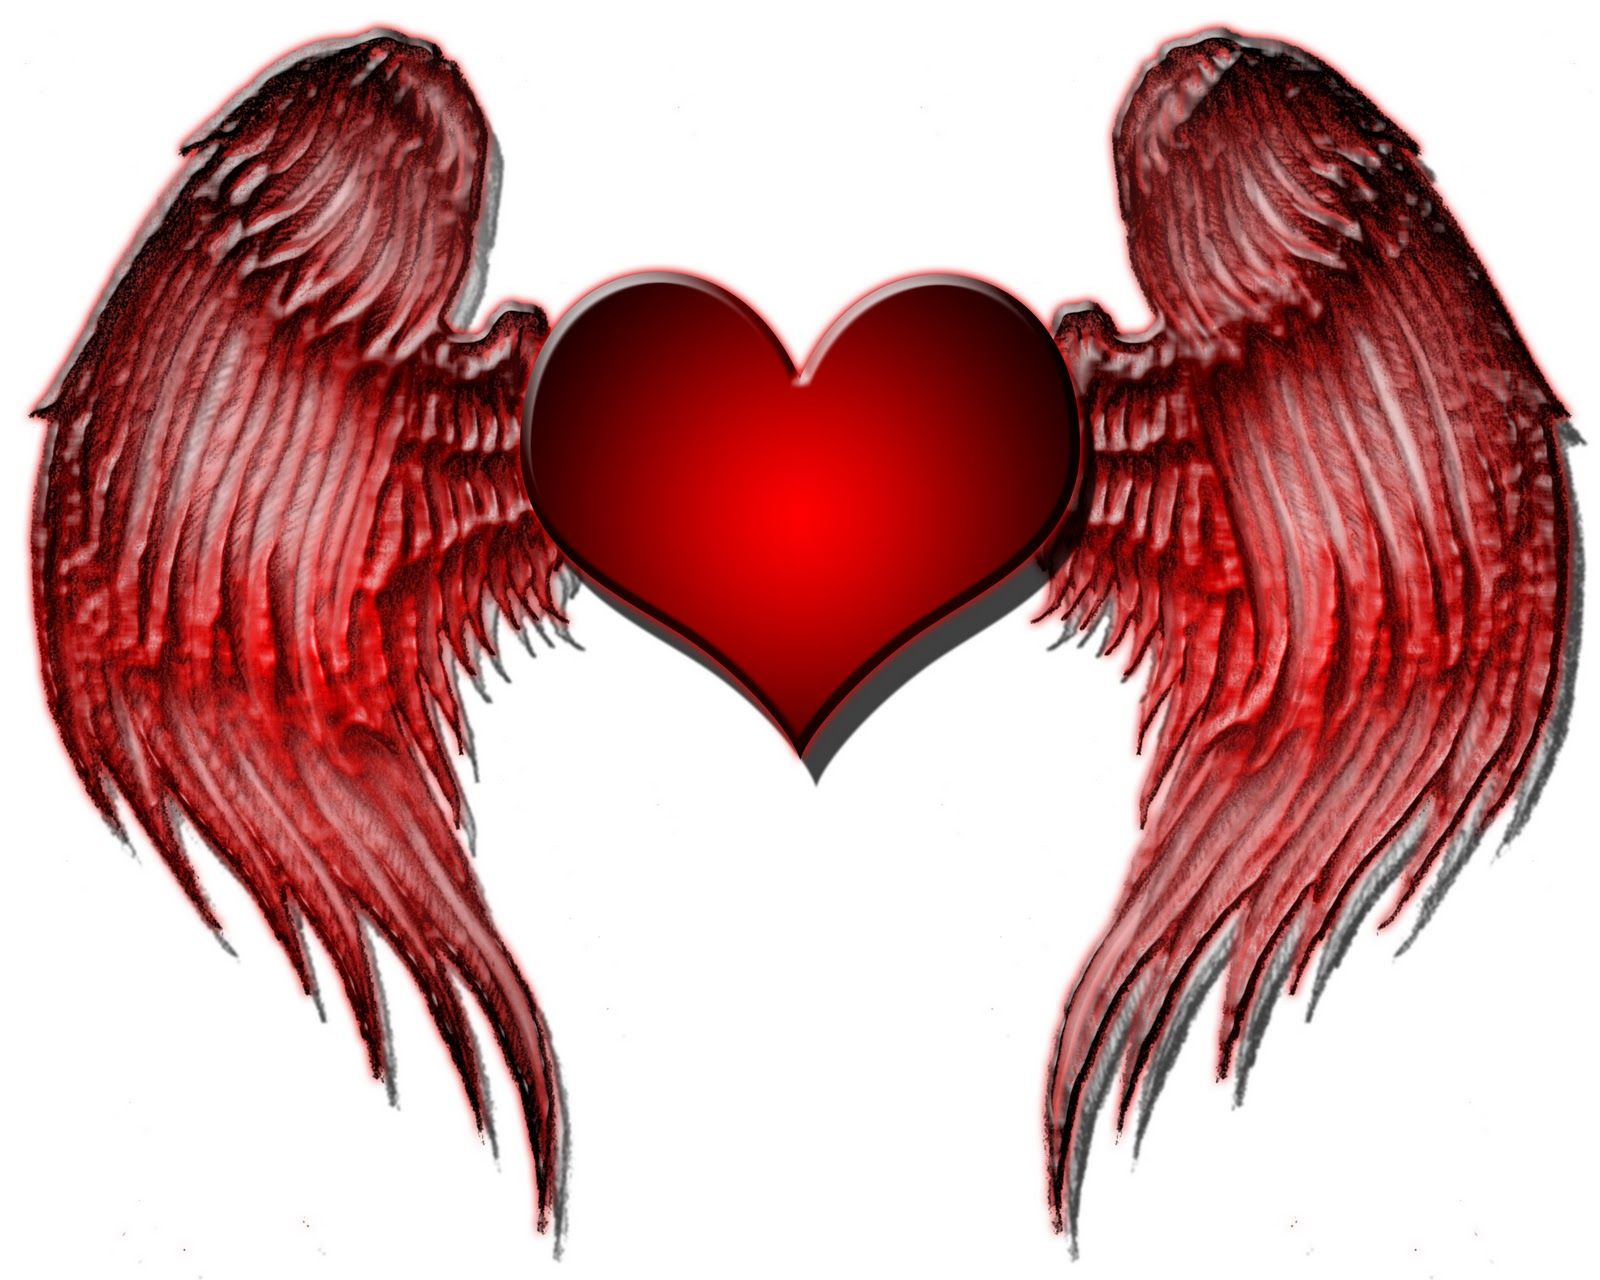 Rennisance Rose Design Heart Wings Heart With Wings Heart With Wings Tattoo Heart Shaped Angel Wings